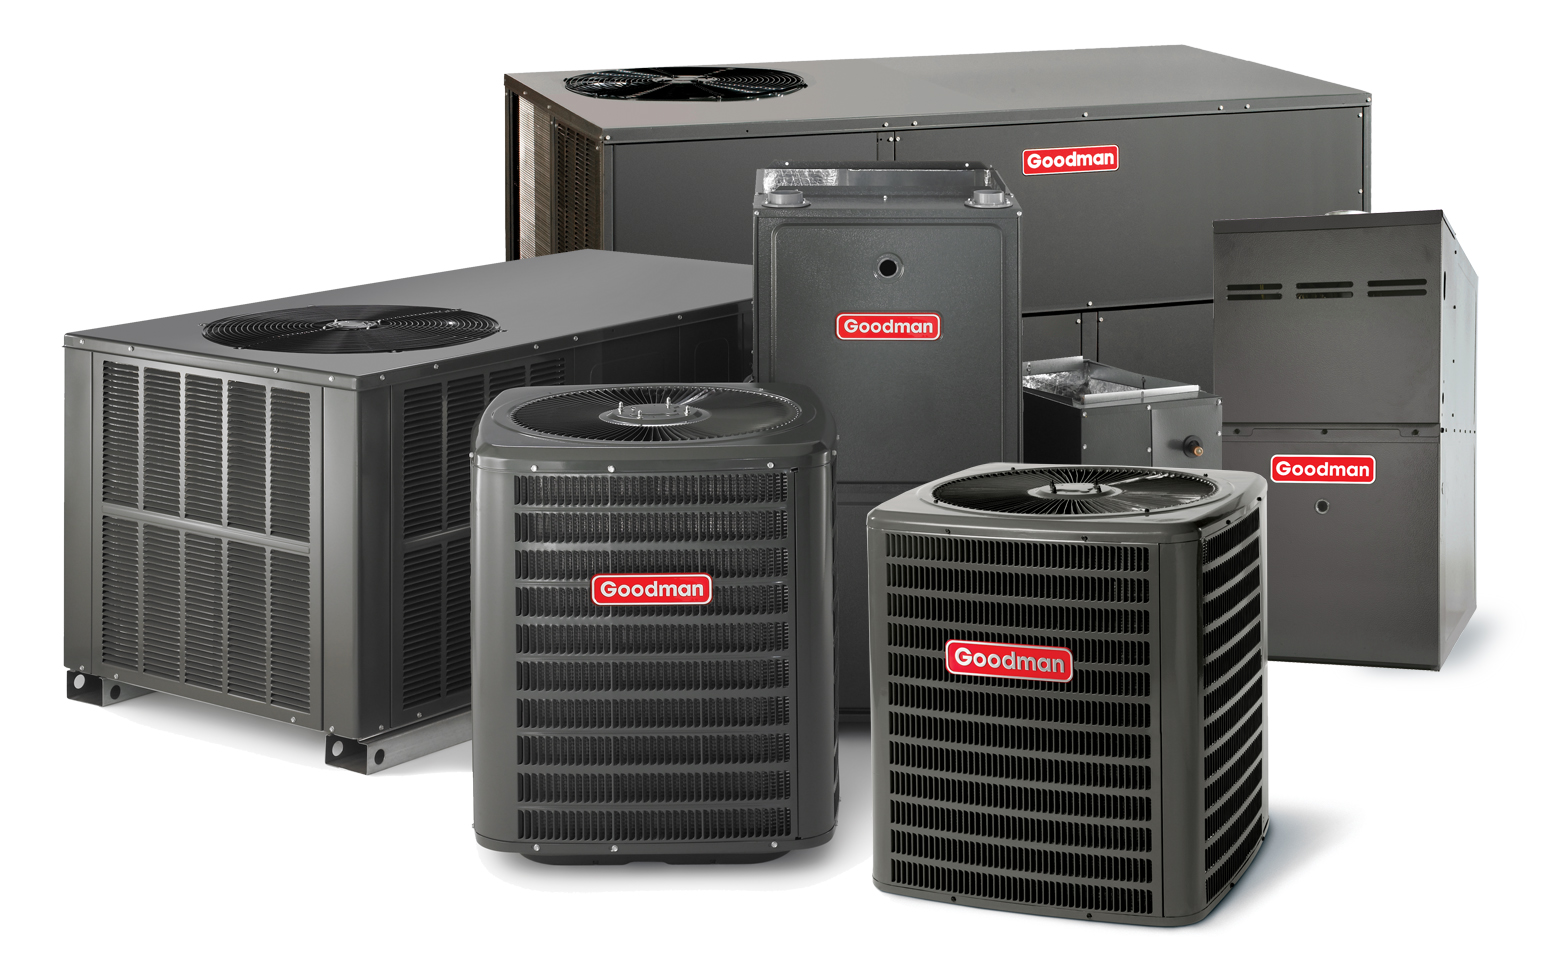 #BB1017 Tampa Air Conditioning Parts 813 972 4242 Best 12083 Goodman Air Conditioning Systems photos with 1553x979 px on helpvideos.info - Air Conditioners, Air Coolers and more